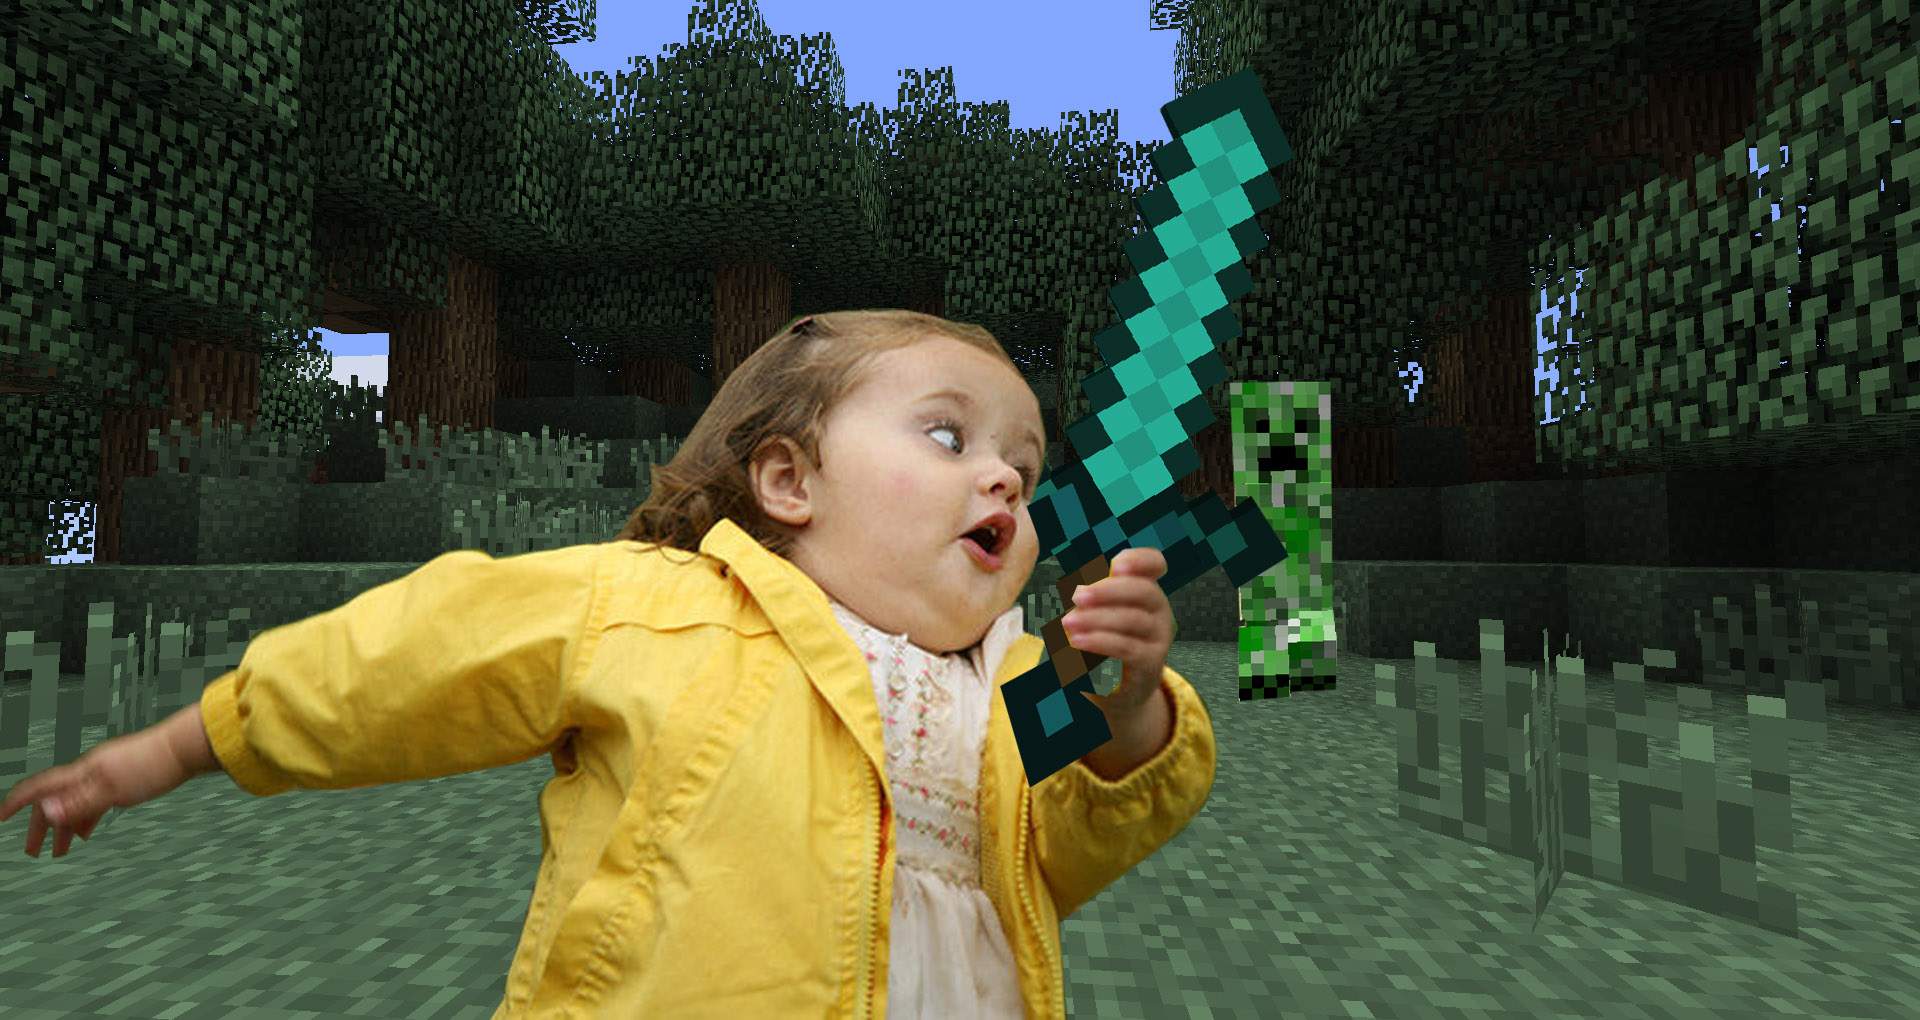 853 image 220044] chubby bubbles girl know your meme